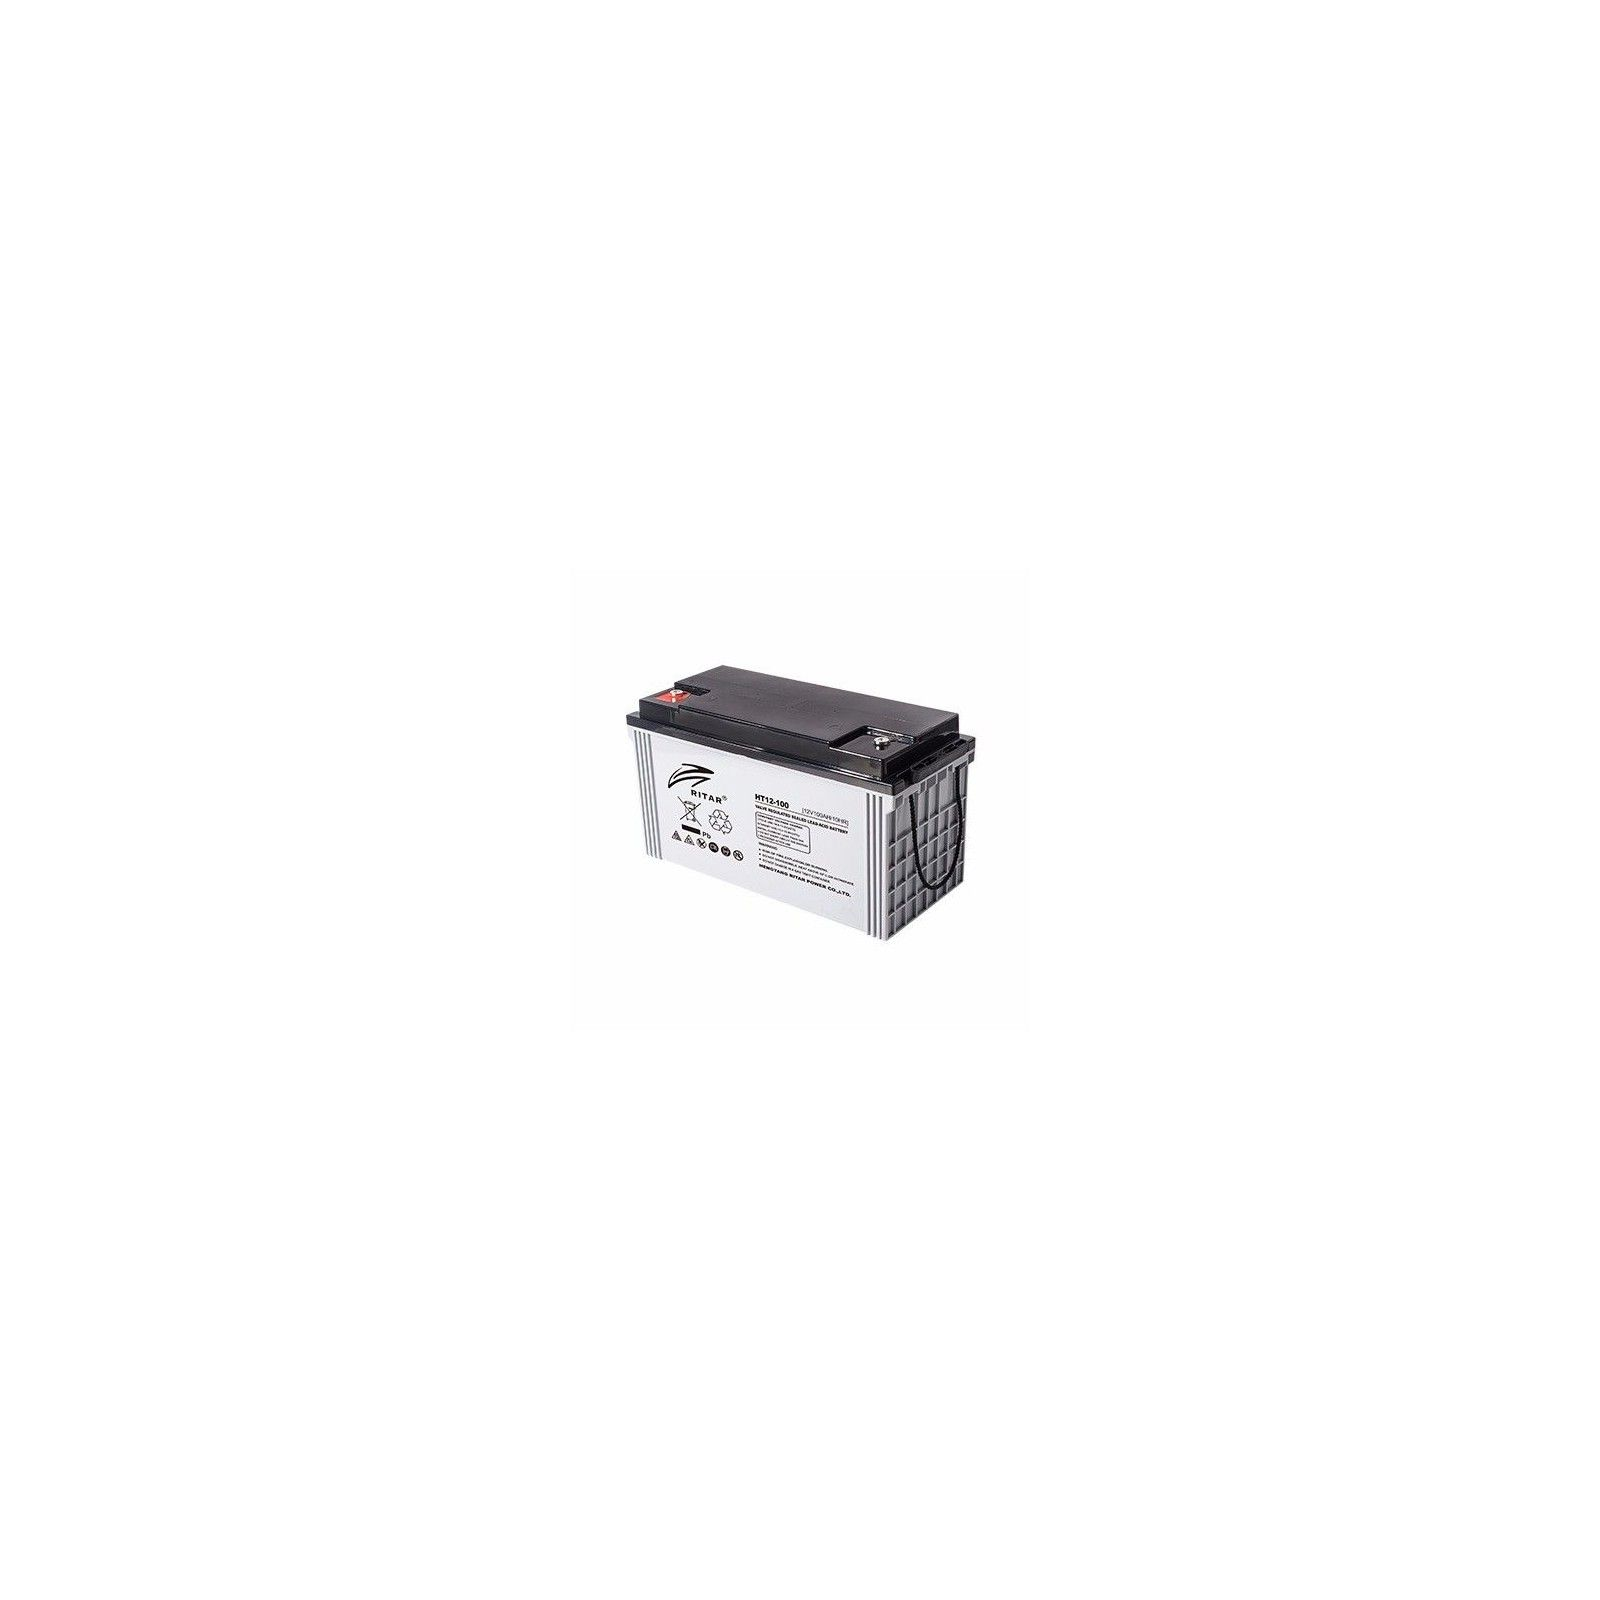 BATTERY RITAR RT645 6V 4,5AH  - 1